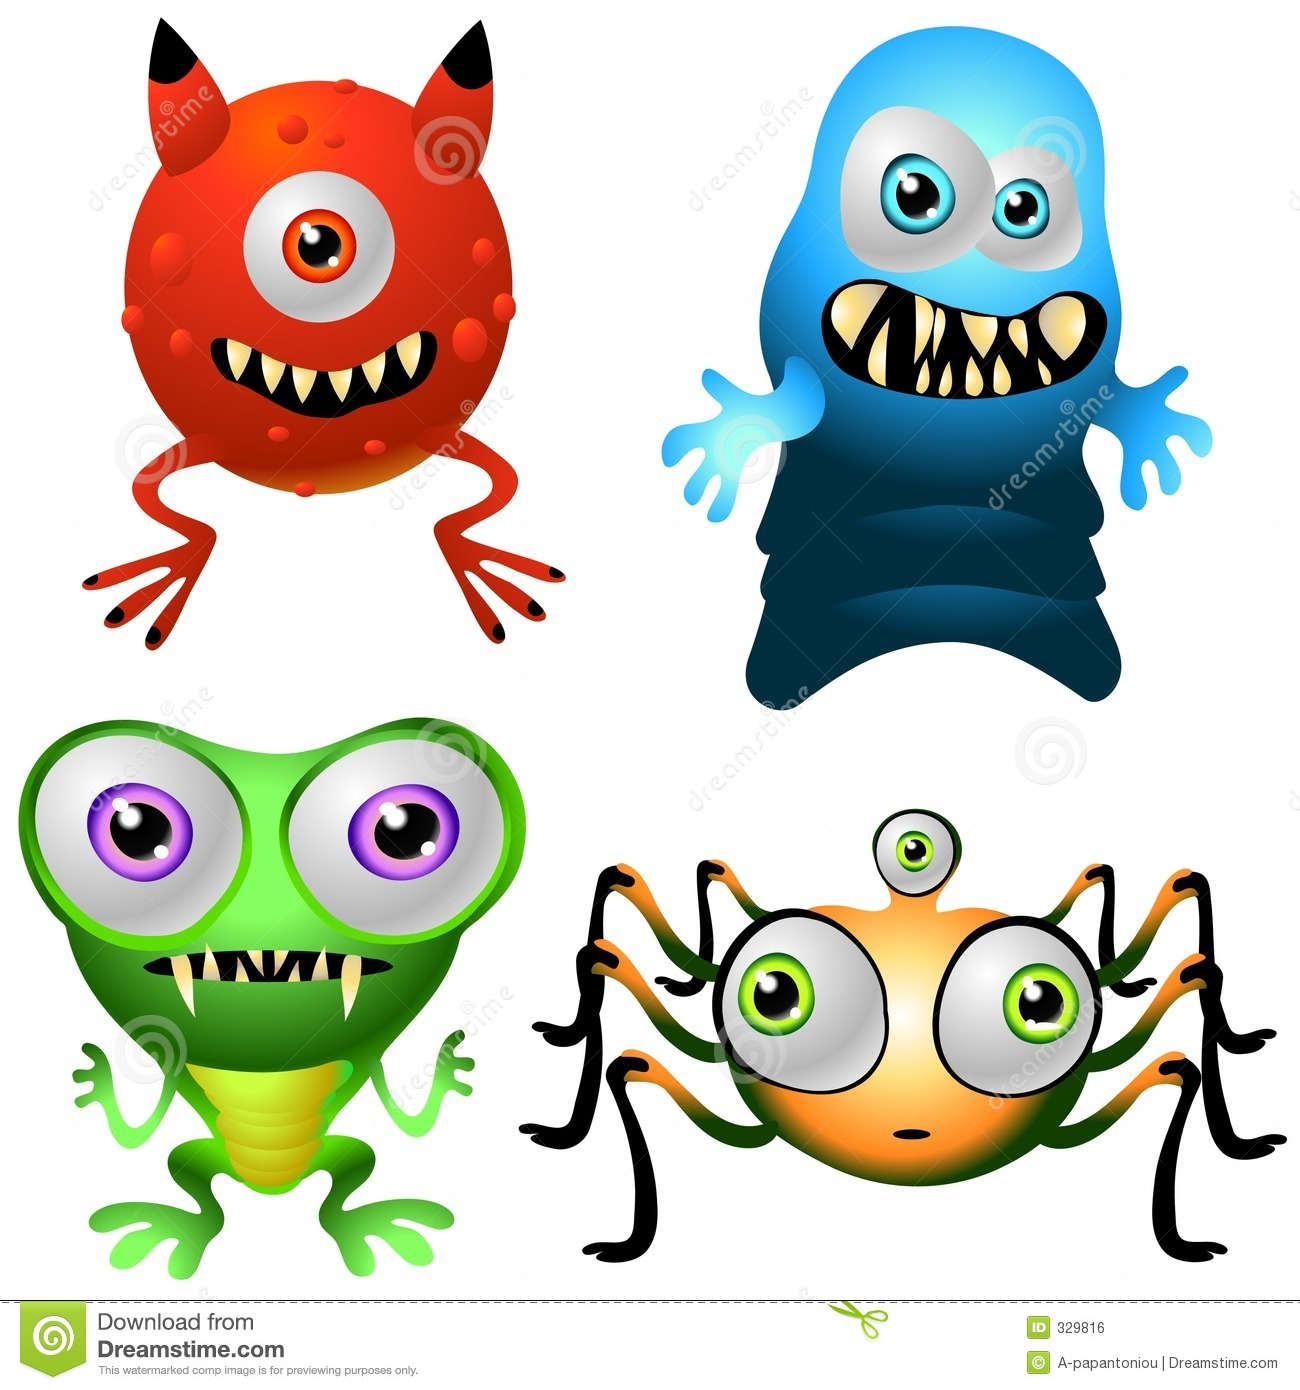 Character Design Collection 013: Baby Monsters